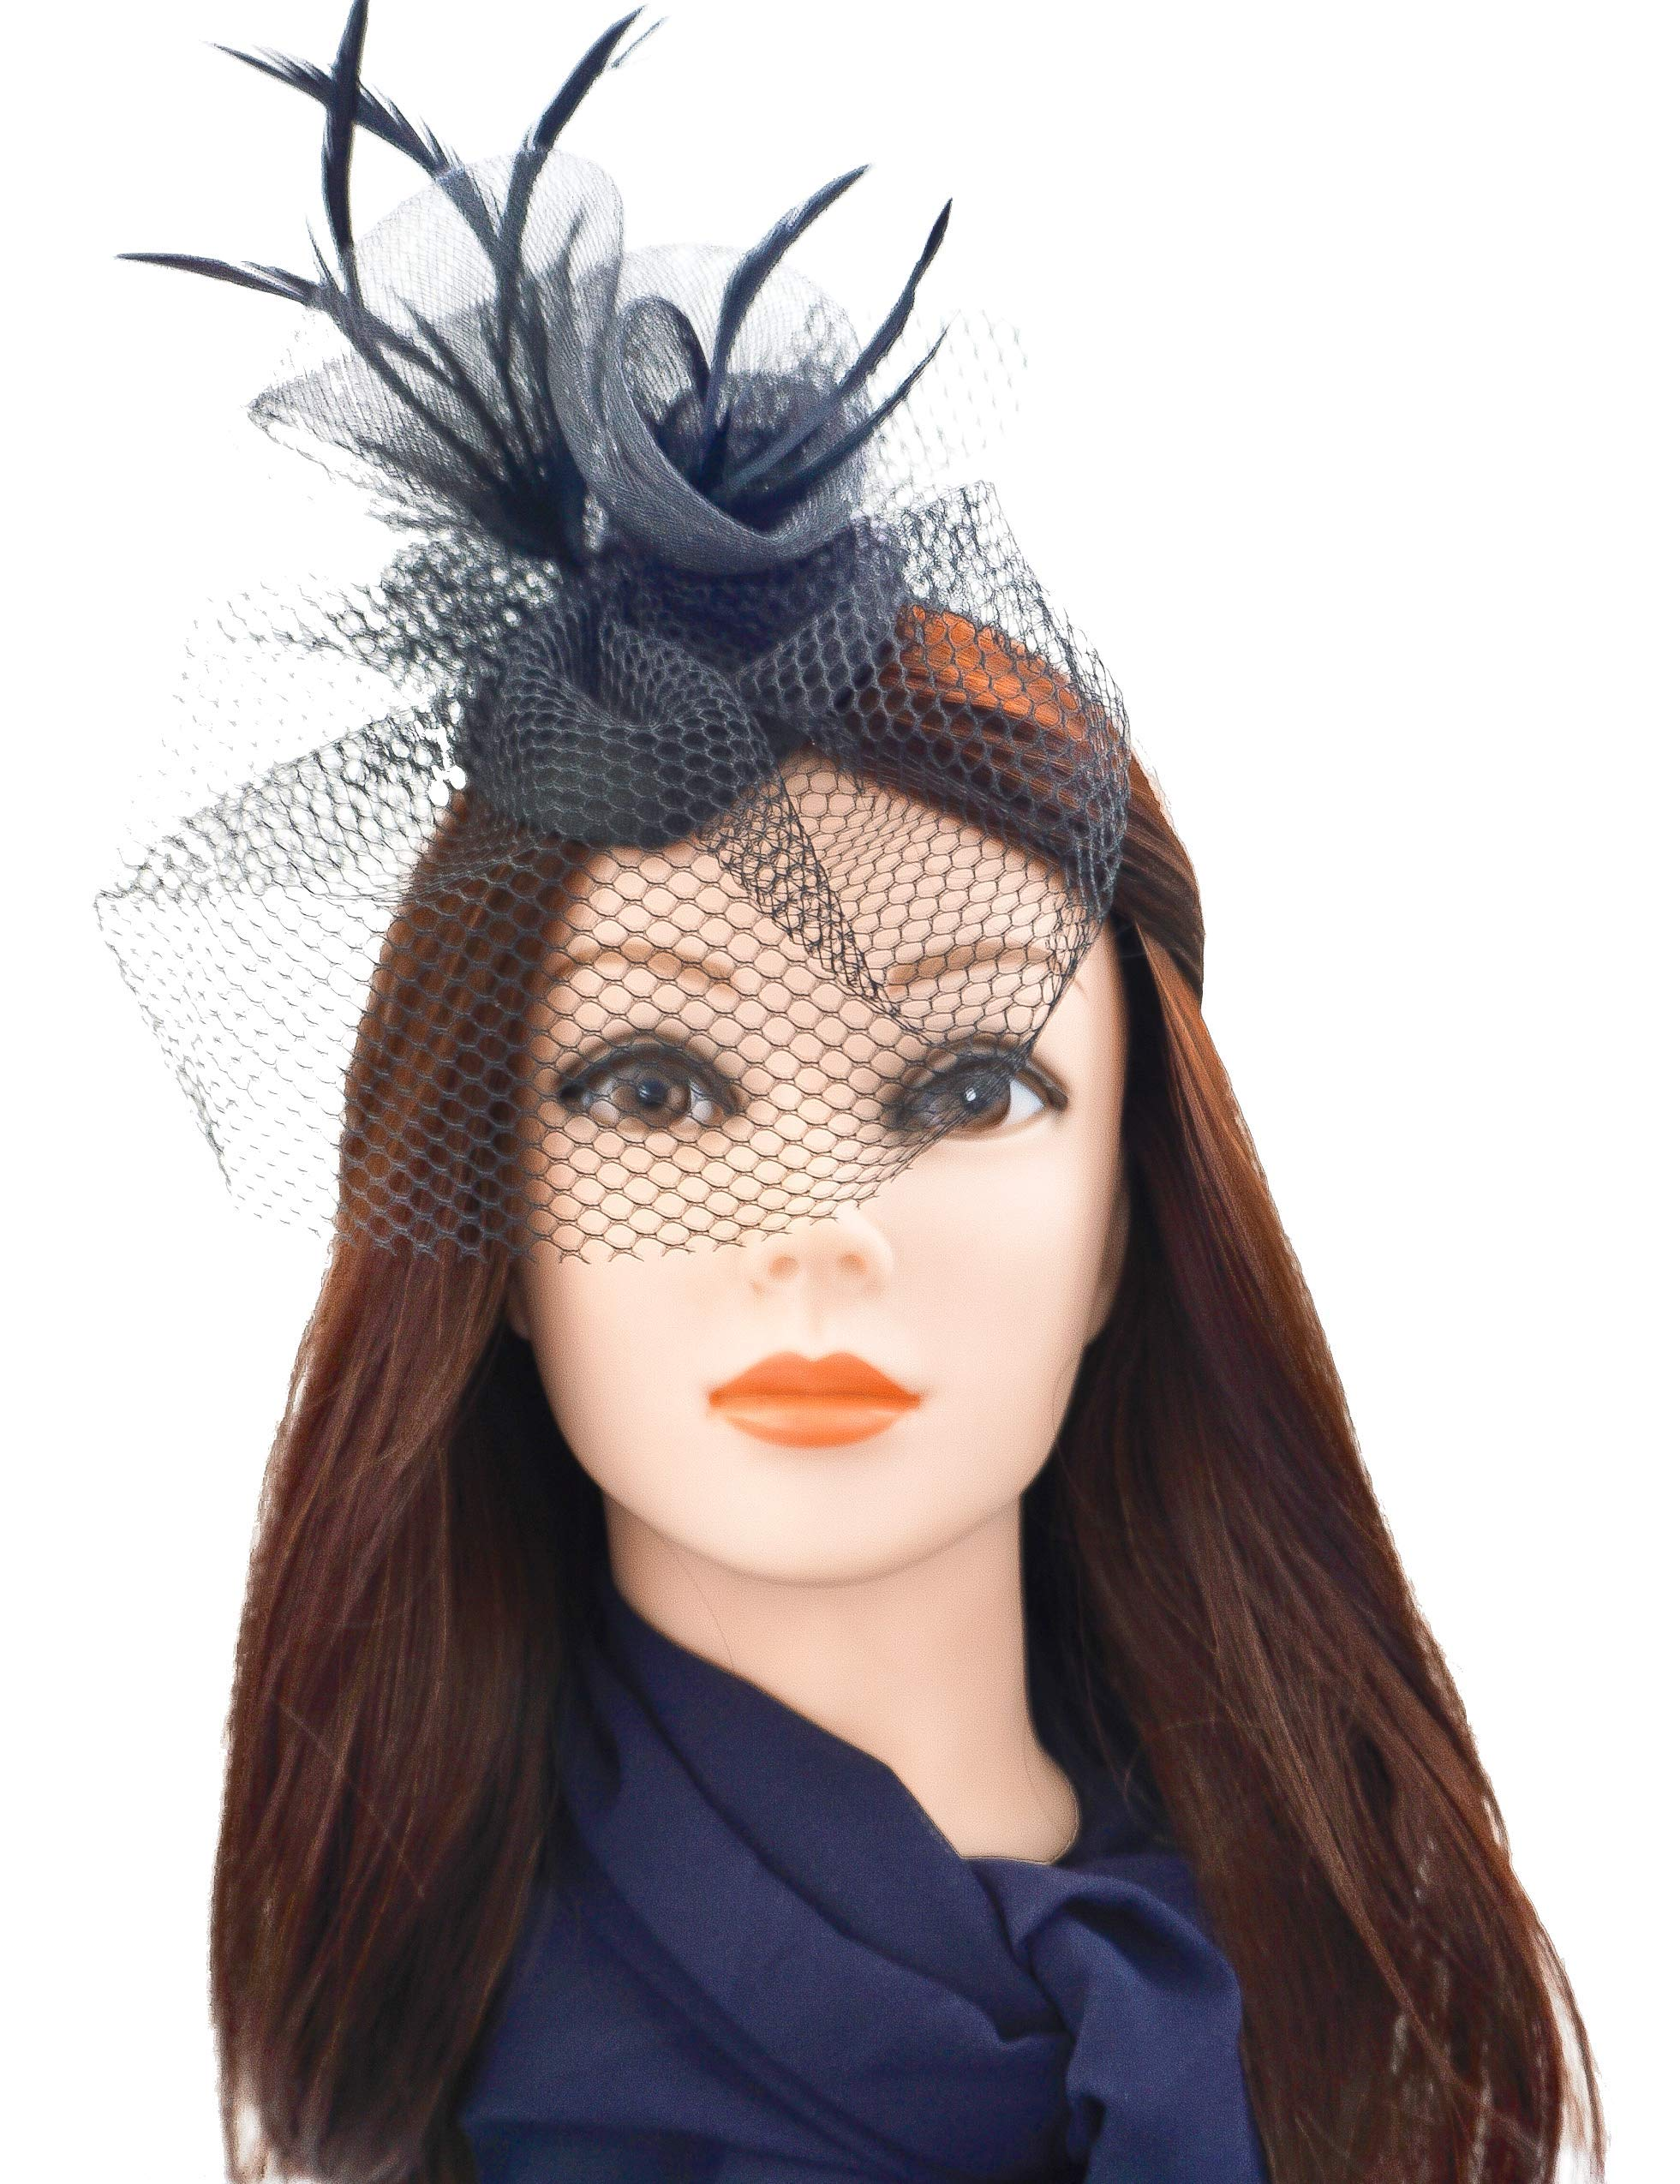 Z&Co Black Fascinator Hat for Women Tea Party, Kentucky Derby Wedding with Mesh Feathers Hair Clip & Headband (Black)